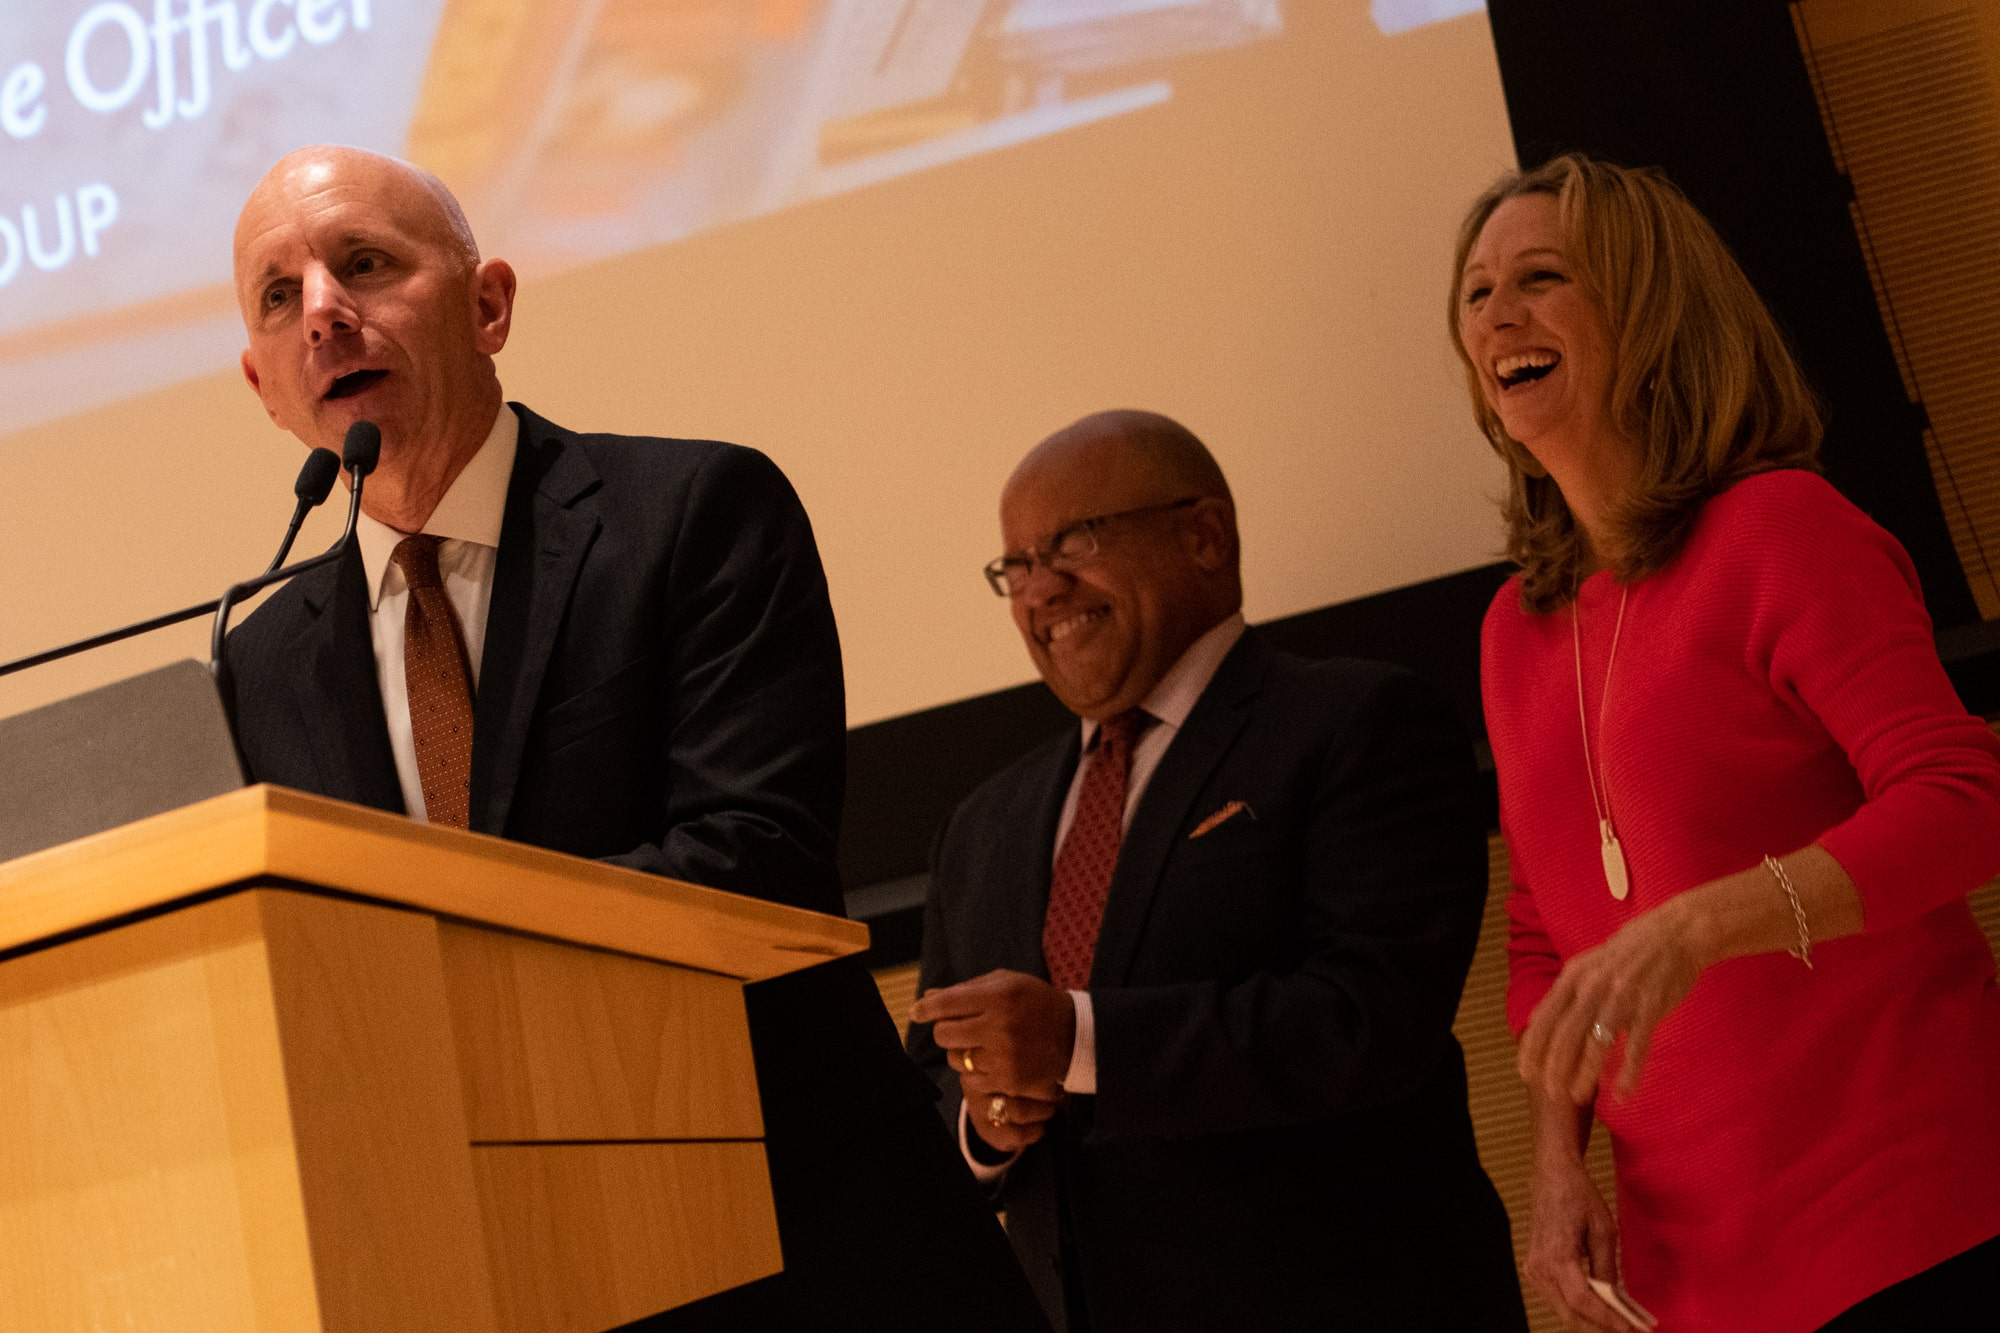 ESPN broadcaster Sean McDonough shares remarks about Glickman Award winner Sandy Montag much to the amusement of fellow broadcasters Mike Tirico and Beth Mowins.